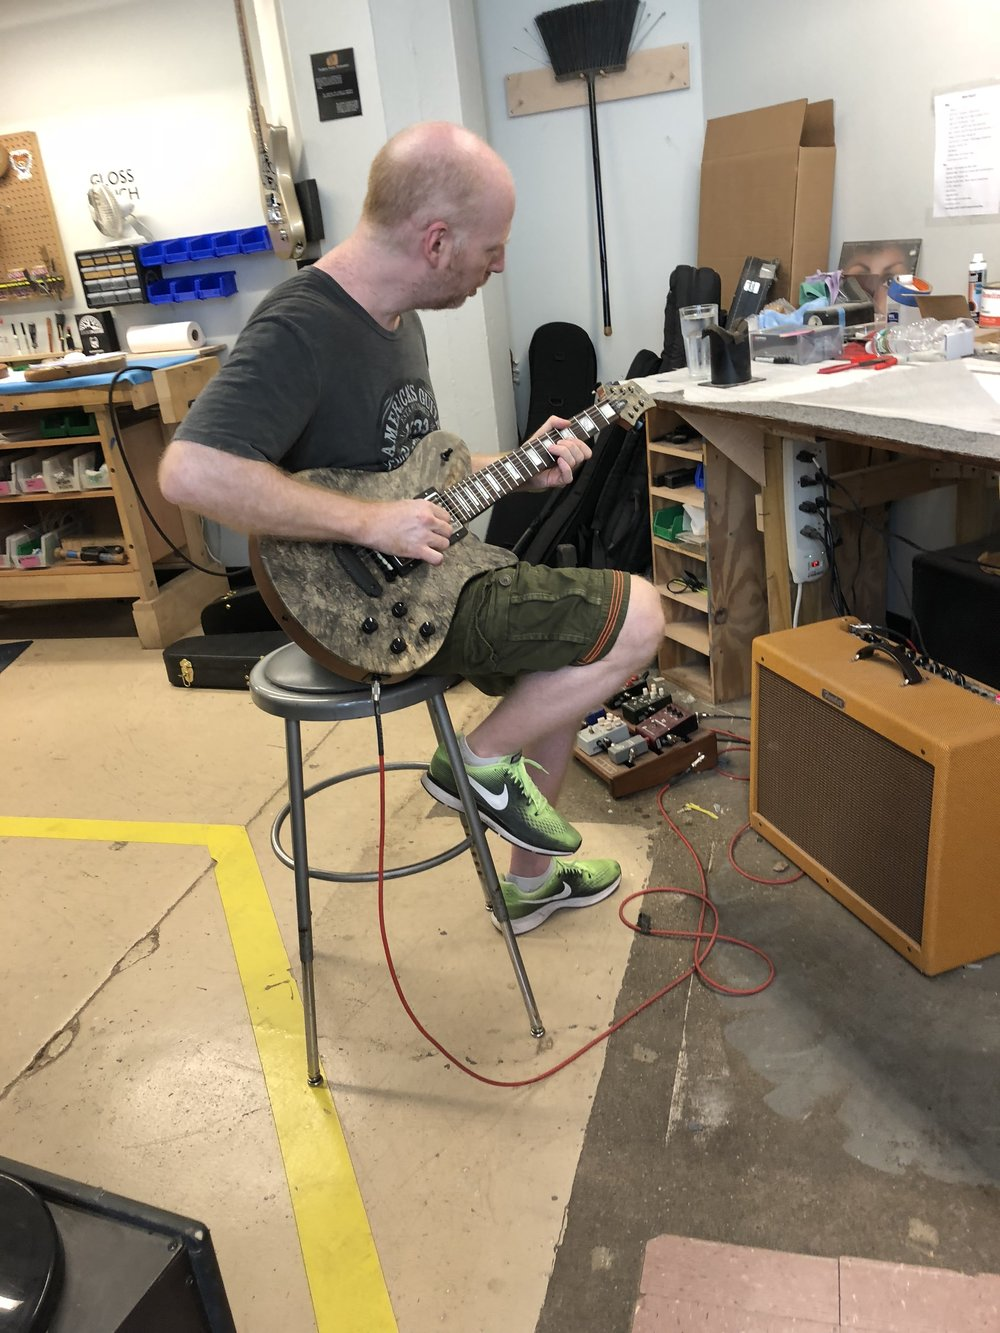 Oz taking our Custom Imperial Guitar for a spin…